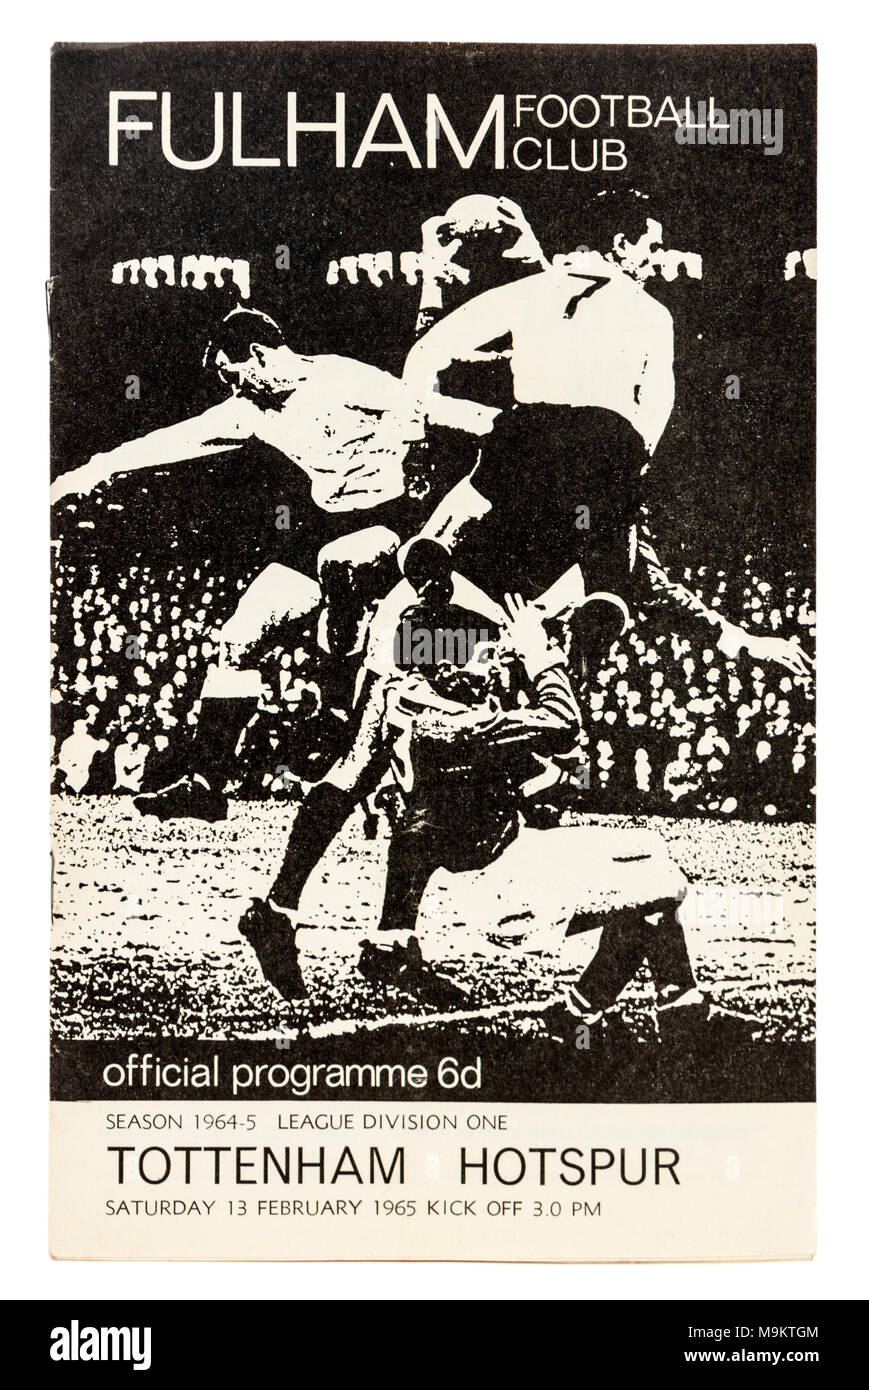 Programme of the football match between Fullham Football Club and Tottenham Hotspur on 13th February 1965 - Stock Image